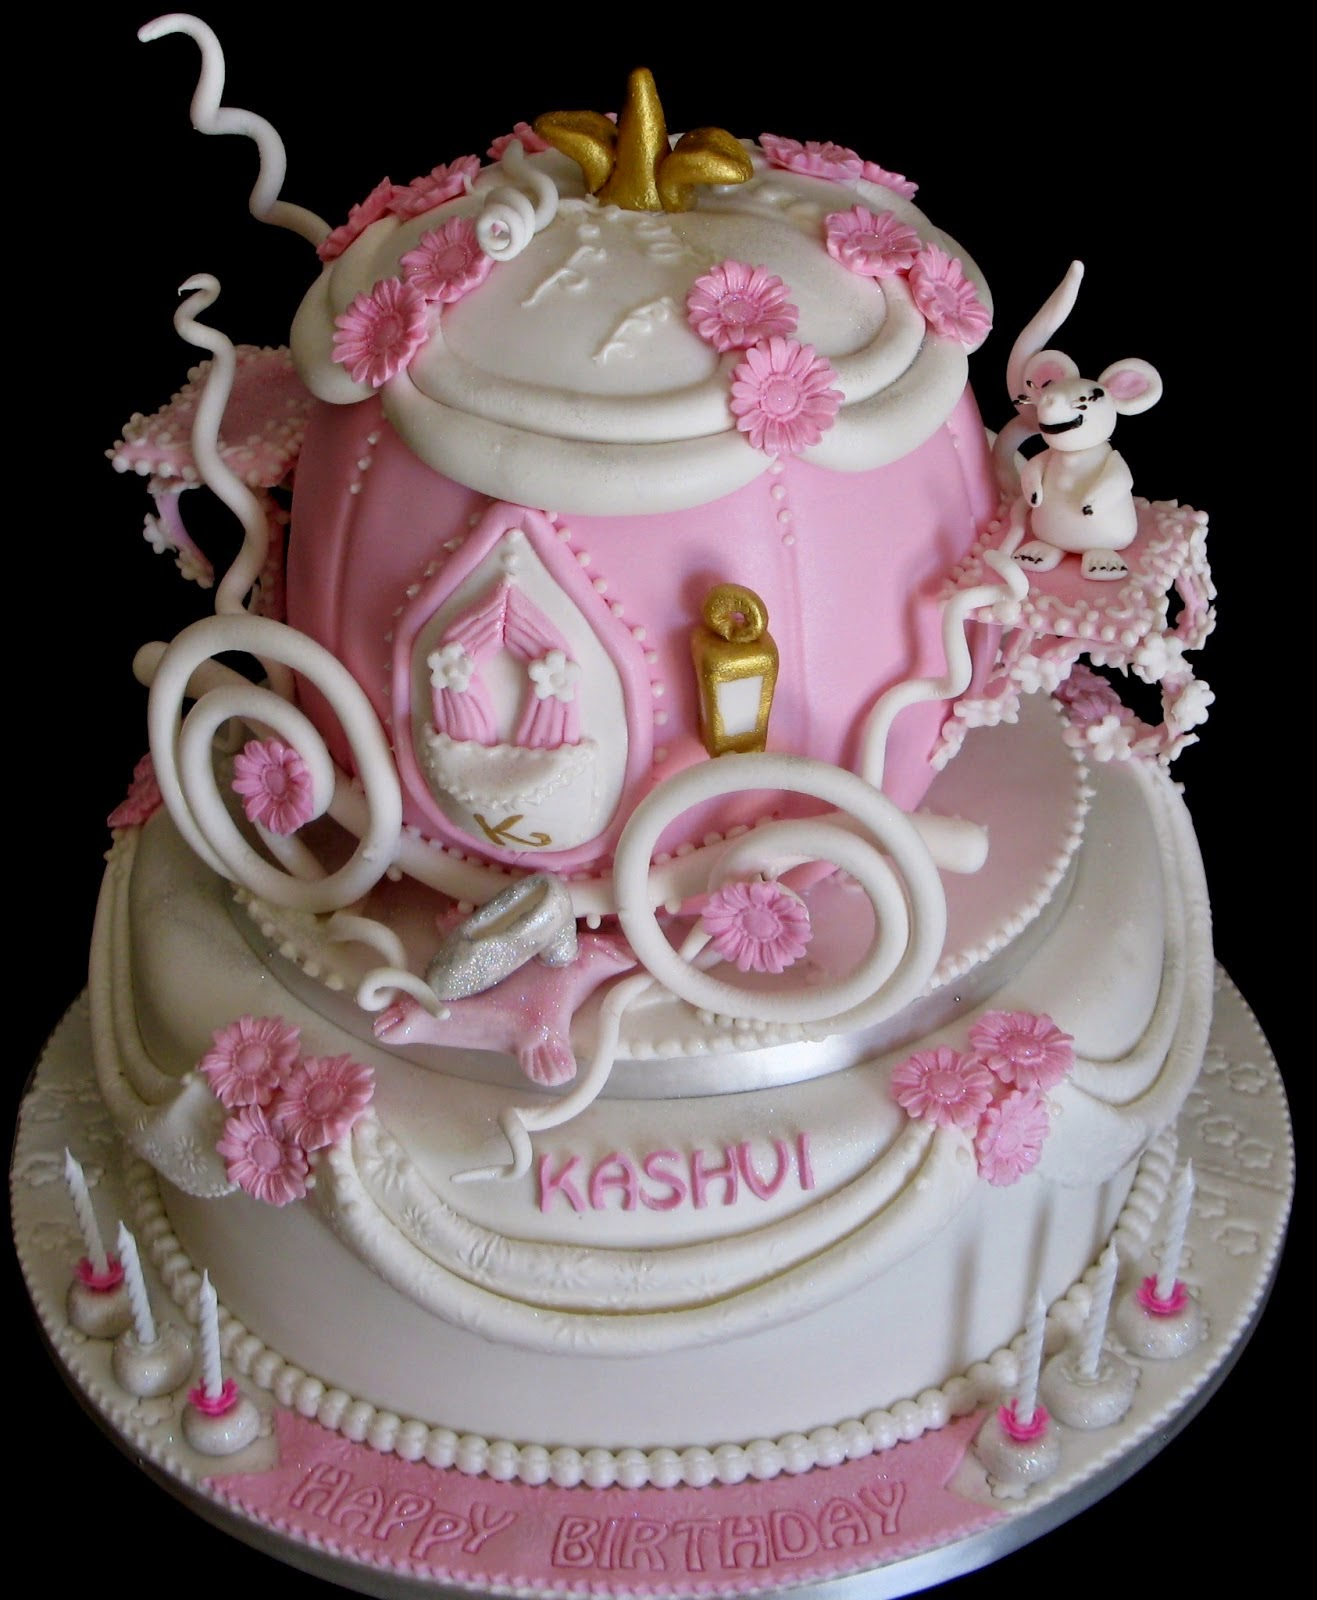 Best Cake Designs For Birthday Girl : Top 77 Photos Of Cakes For Birthday Girls Cakes Gallery